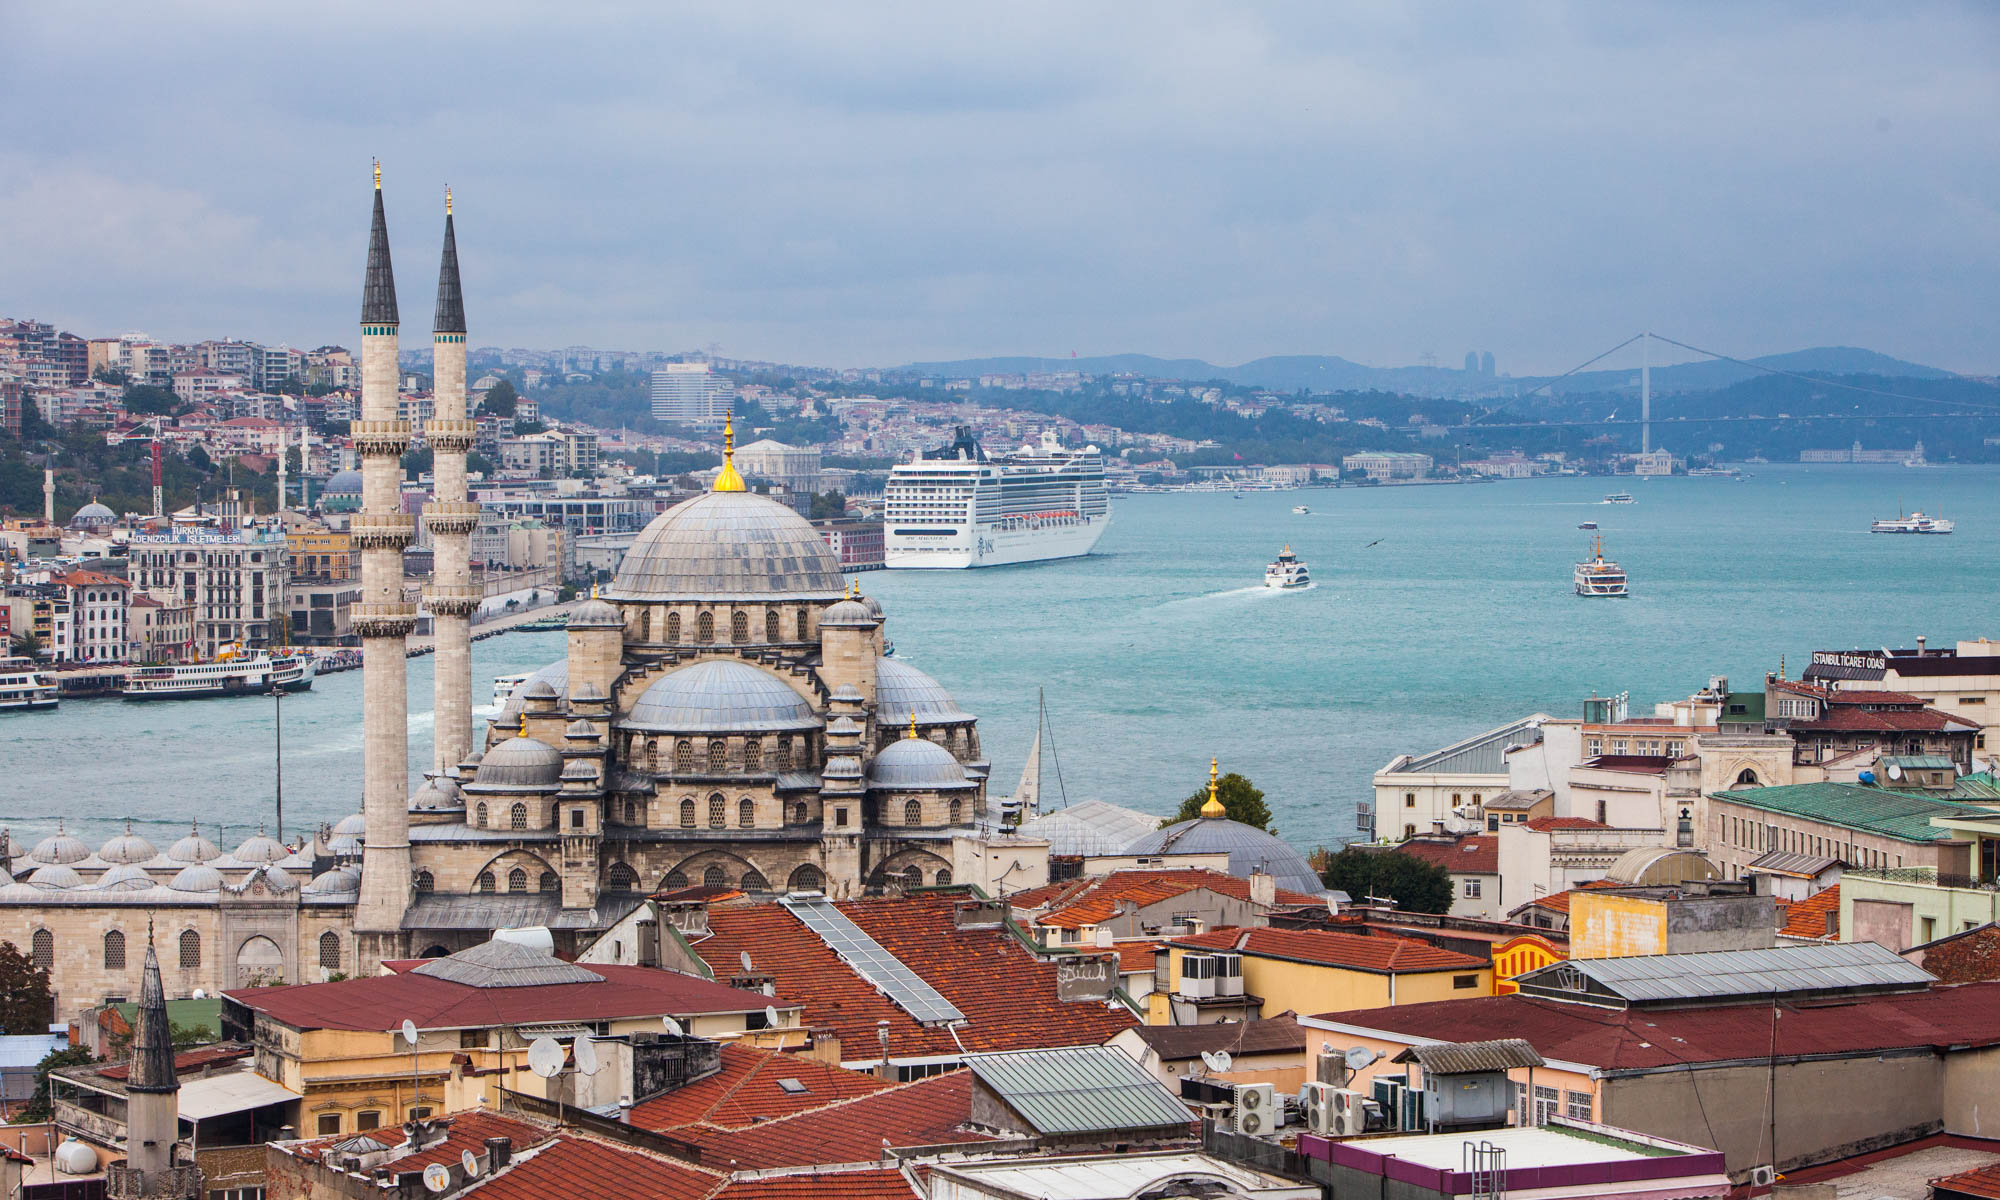 View of mosque in Istanbul with a cruise ship in the background